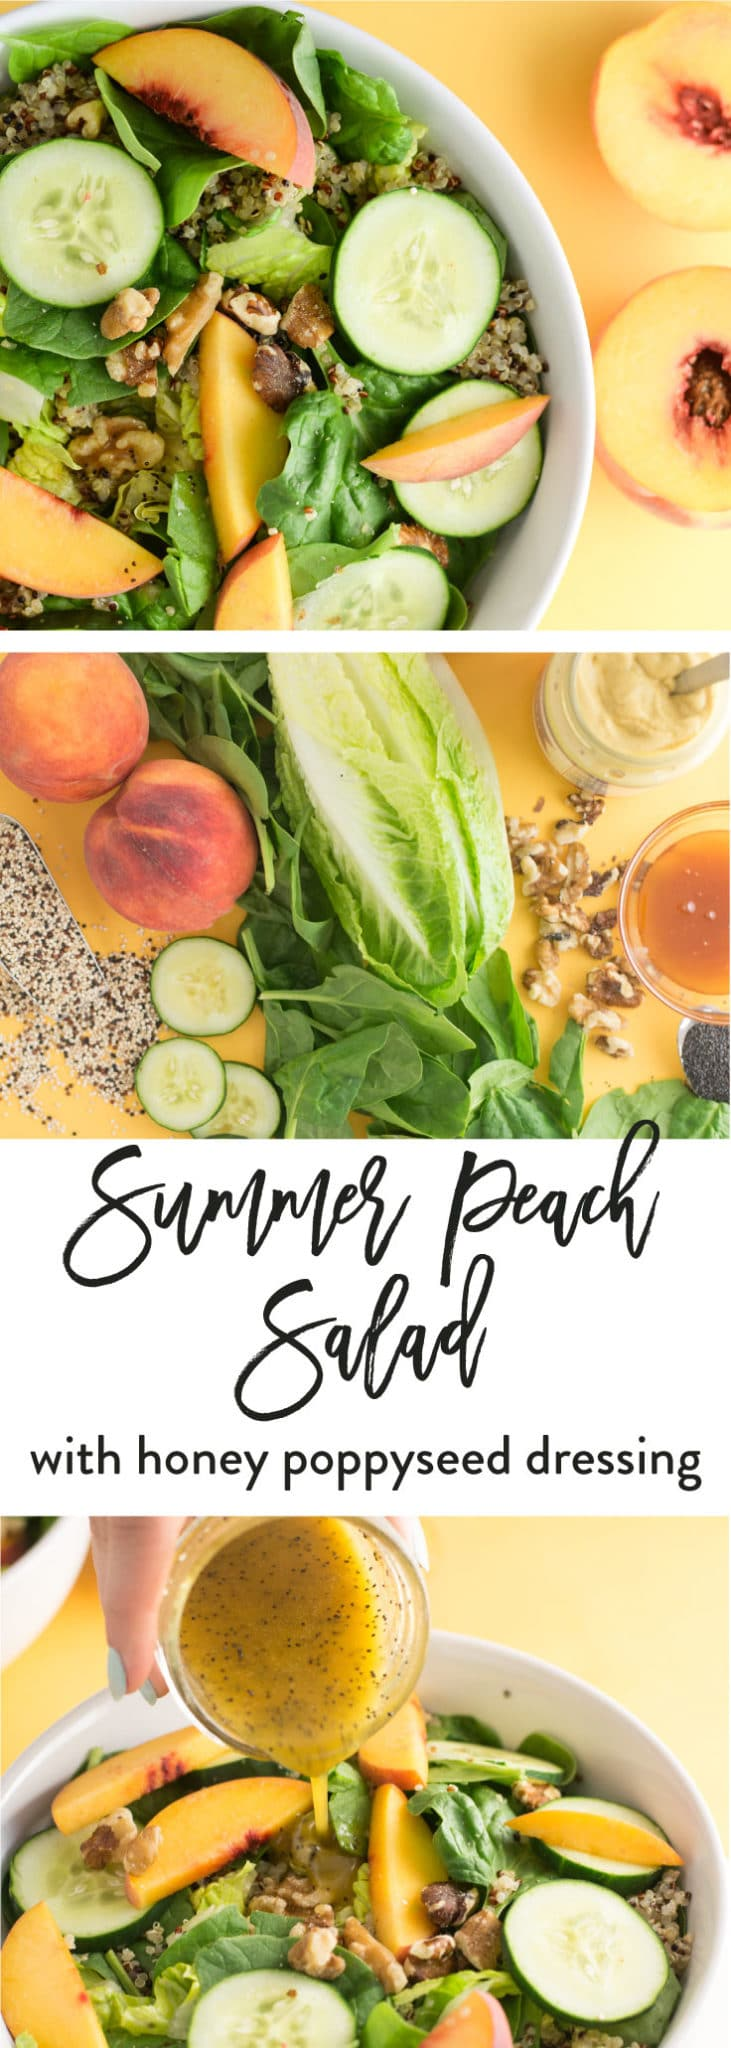 Summer Peach Salad with Honey Poppyseed Dressing -- This summer salad recipe is everything you need for a healthy lunch that showcases seasonal fruits and vegetables. Peaches, greens, walnuts, quinoa, and a sweet and tangy honey poppyseed dressing make this vegetarian salad a great lunch or addition to your dinner. #vegan #vegetarian #salad #healthy #cleaneating #summer - mindfulavocado